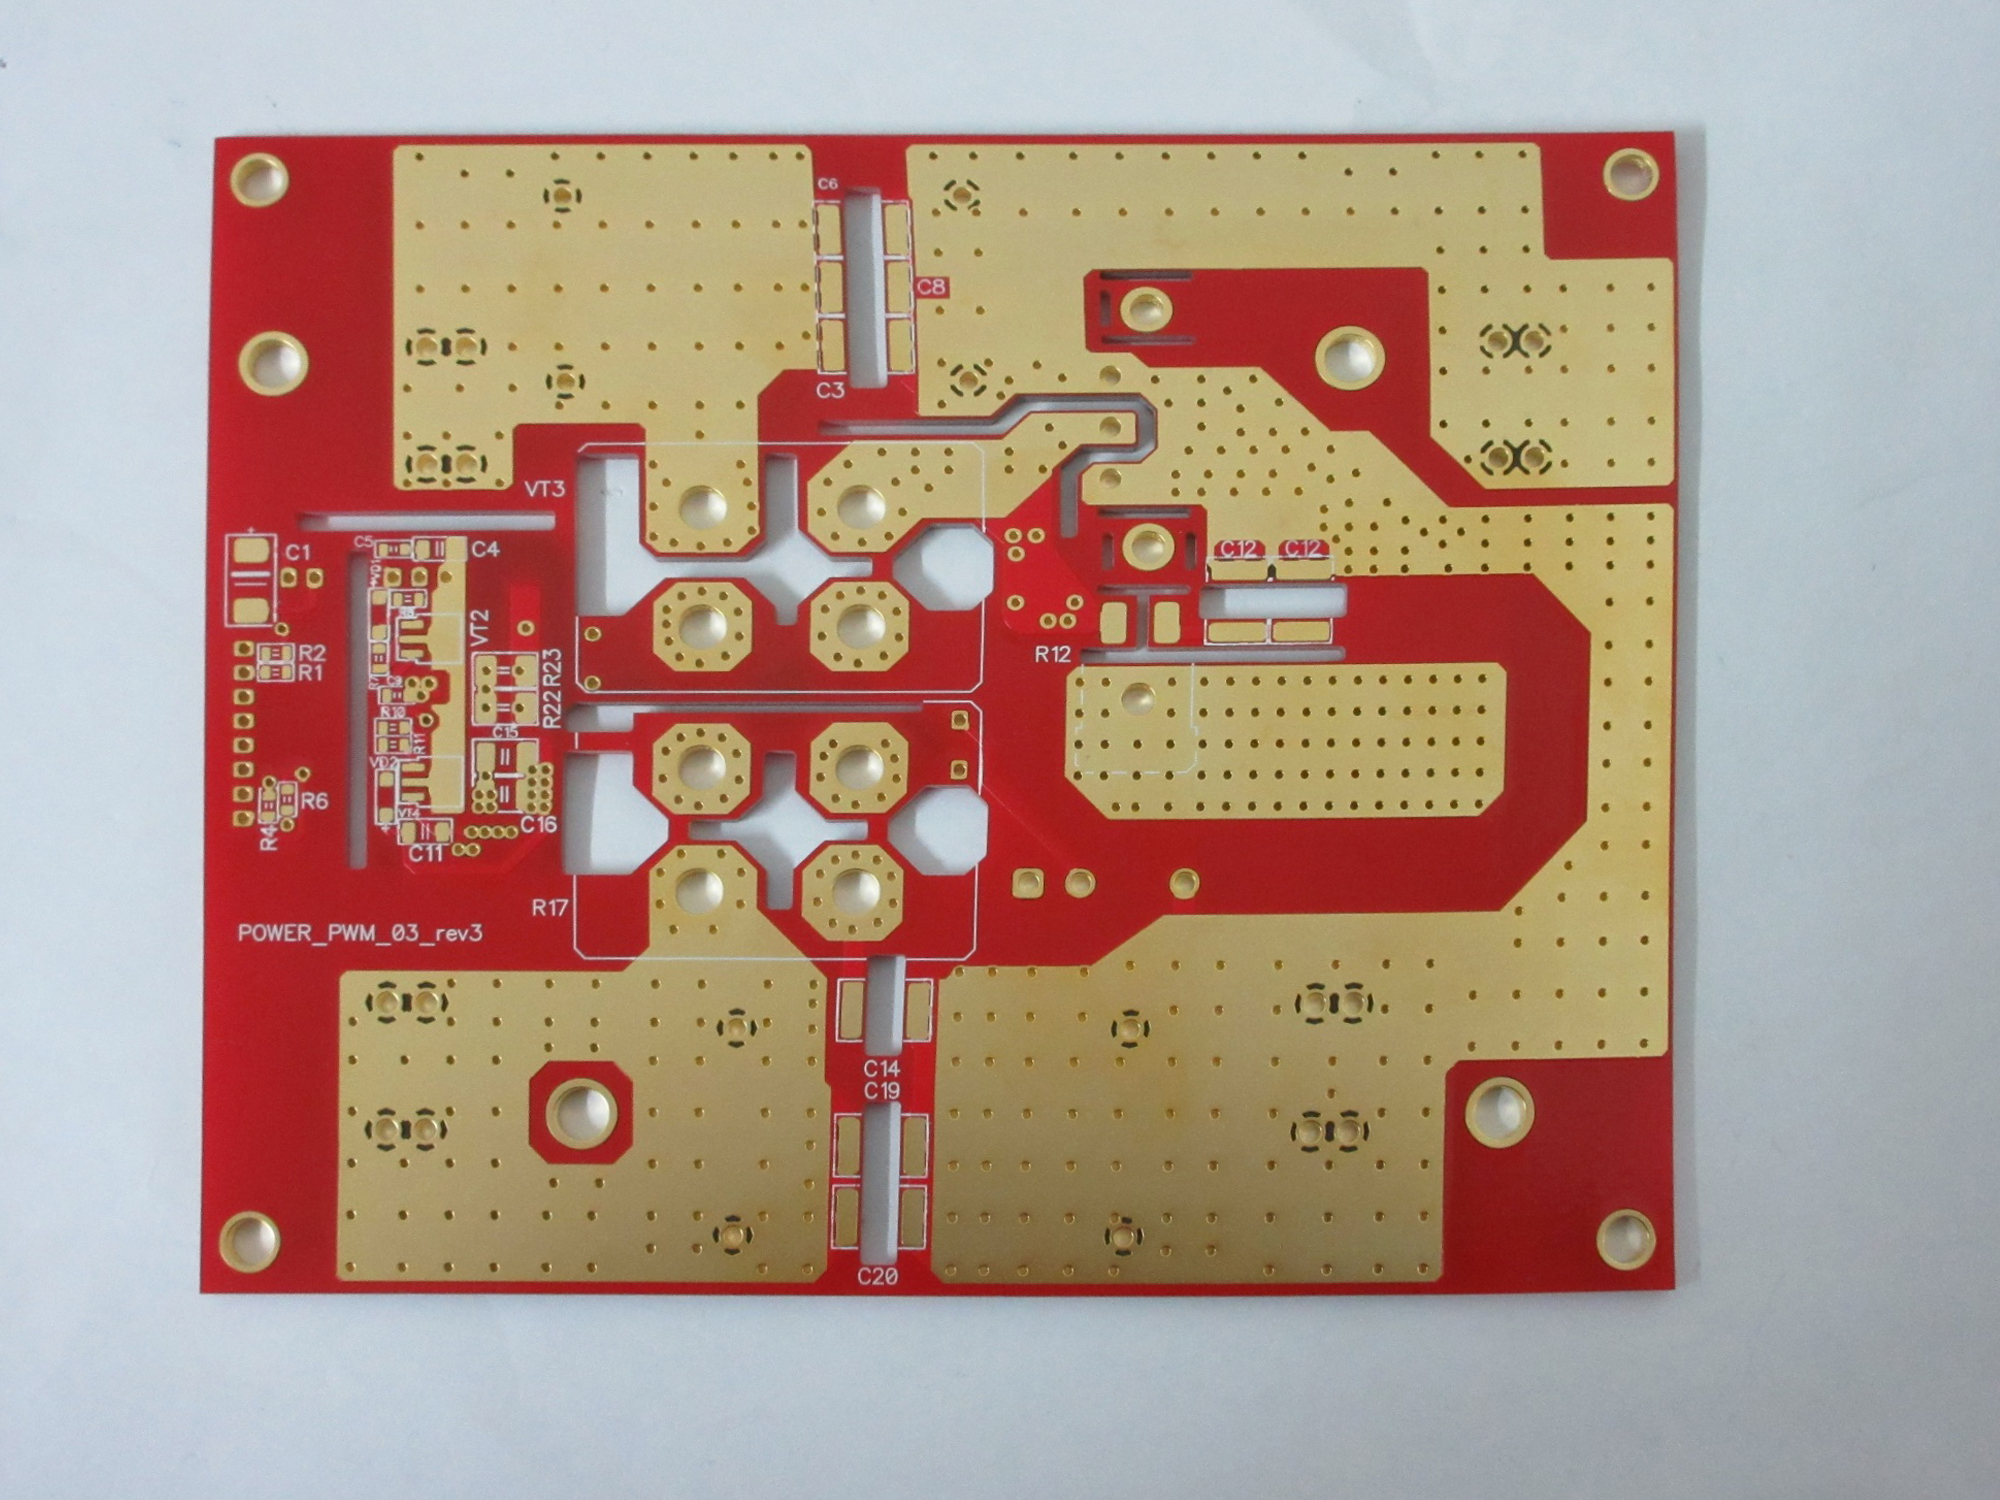 Rigid Flexible Pcbs A Mix Of The Two Best Rigidflex Circuit Boards Are Composed Combination And Attached Images